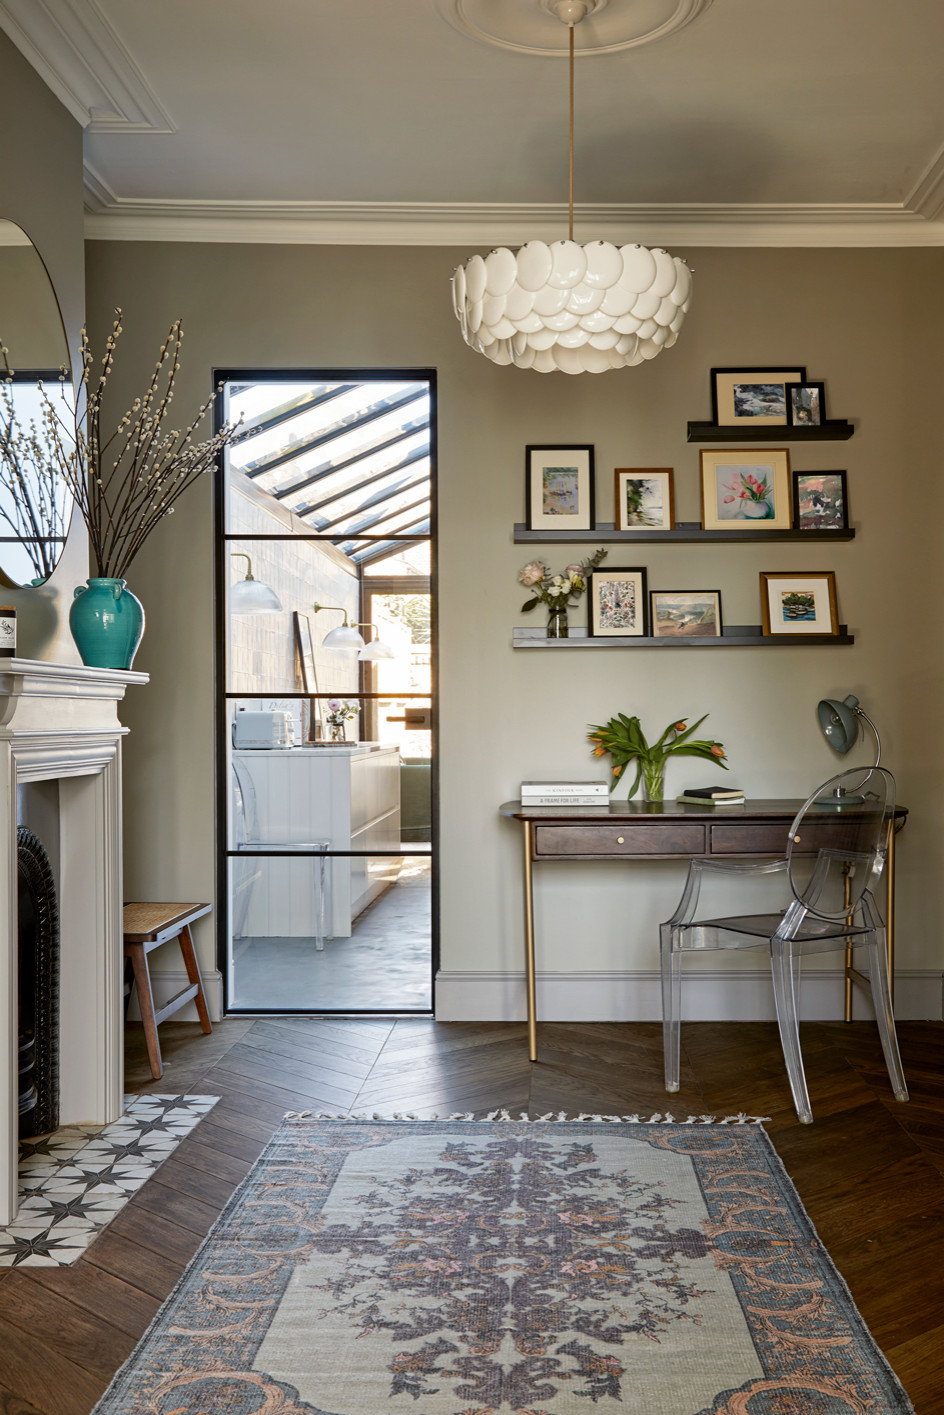 75 Beautiful Home Office Pictures Ideas January 2021 Houzz